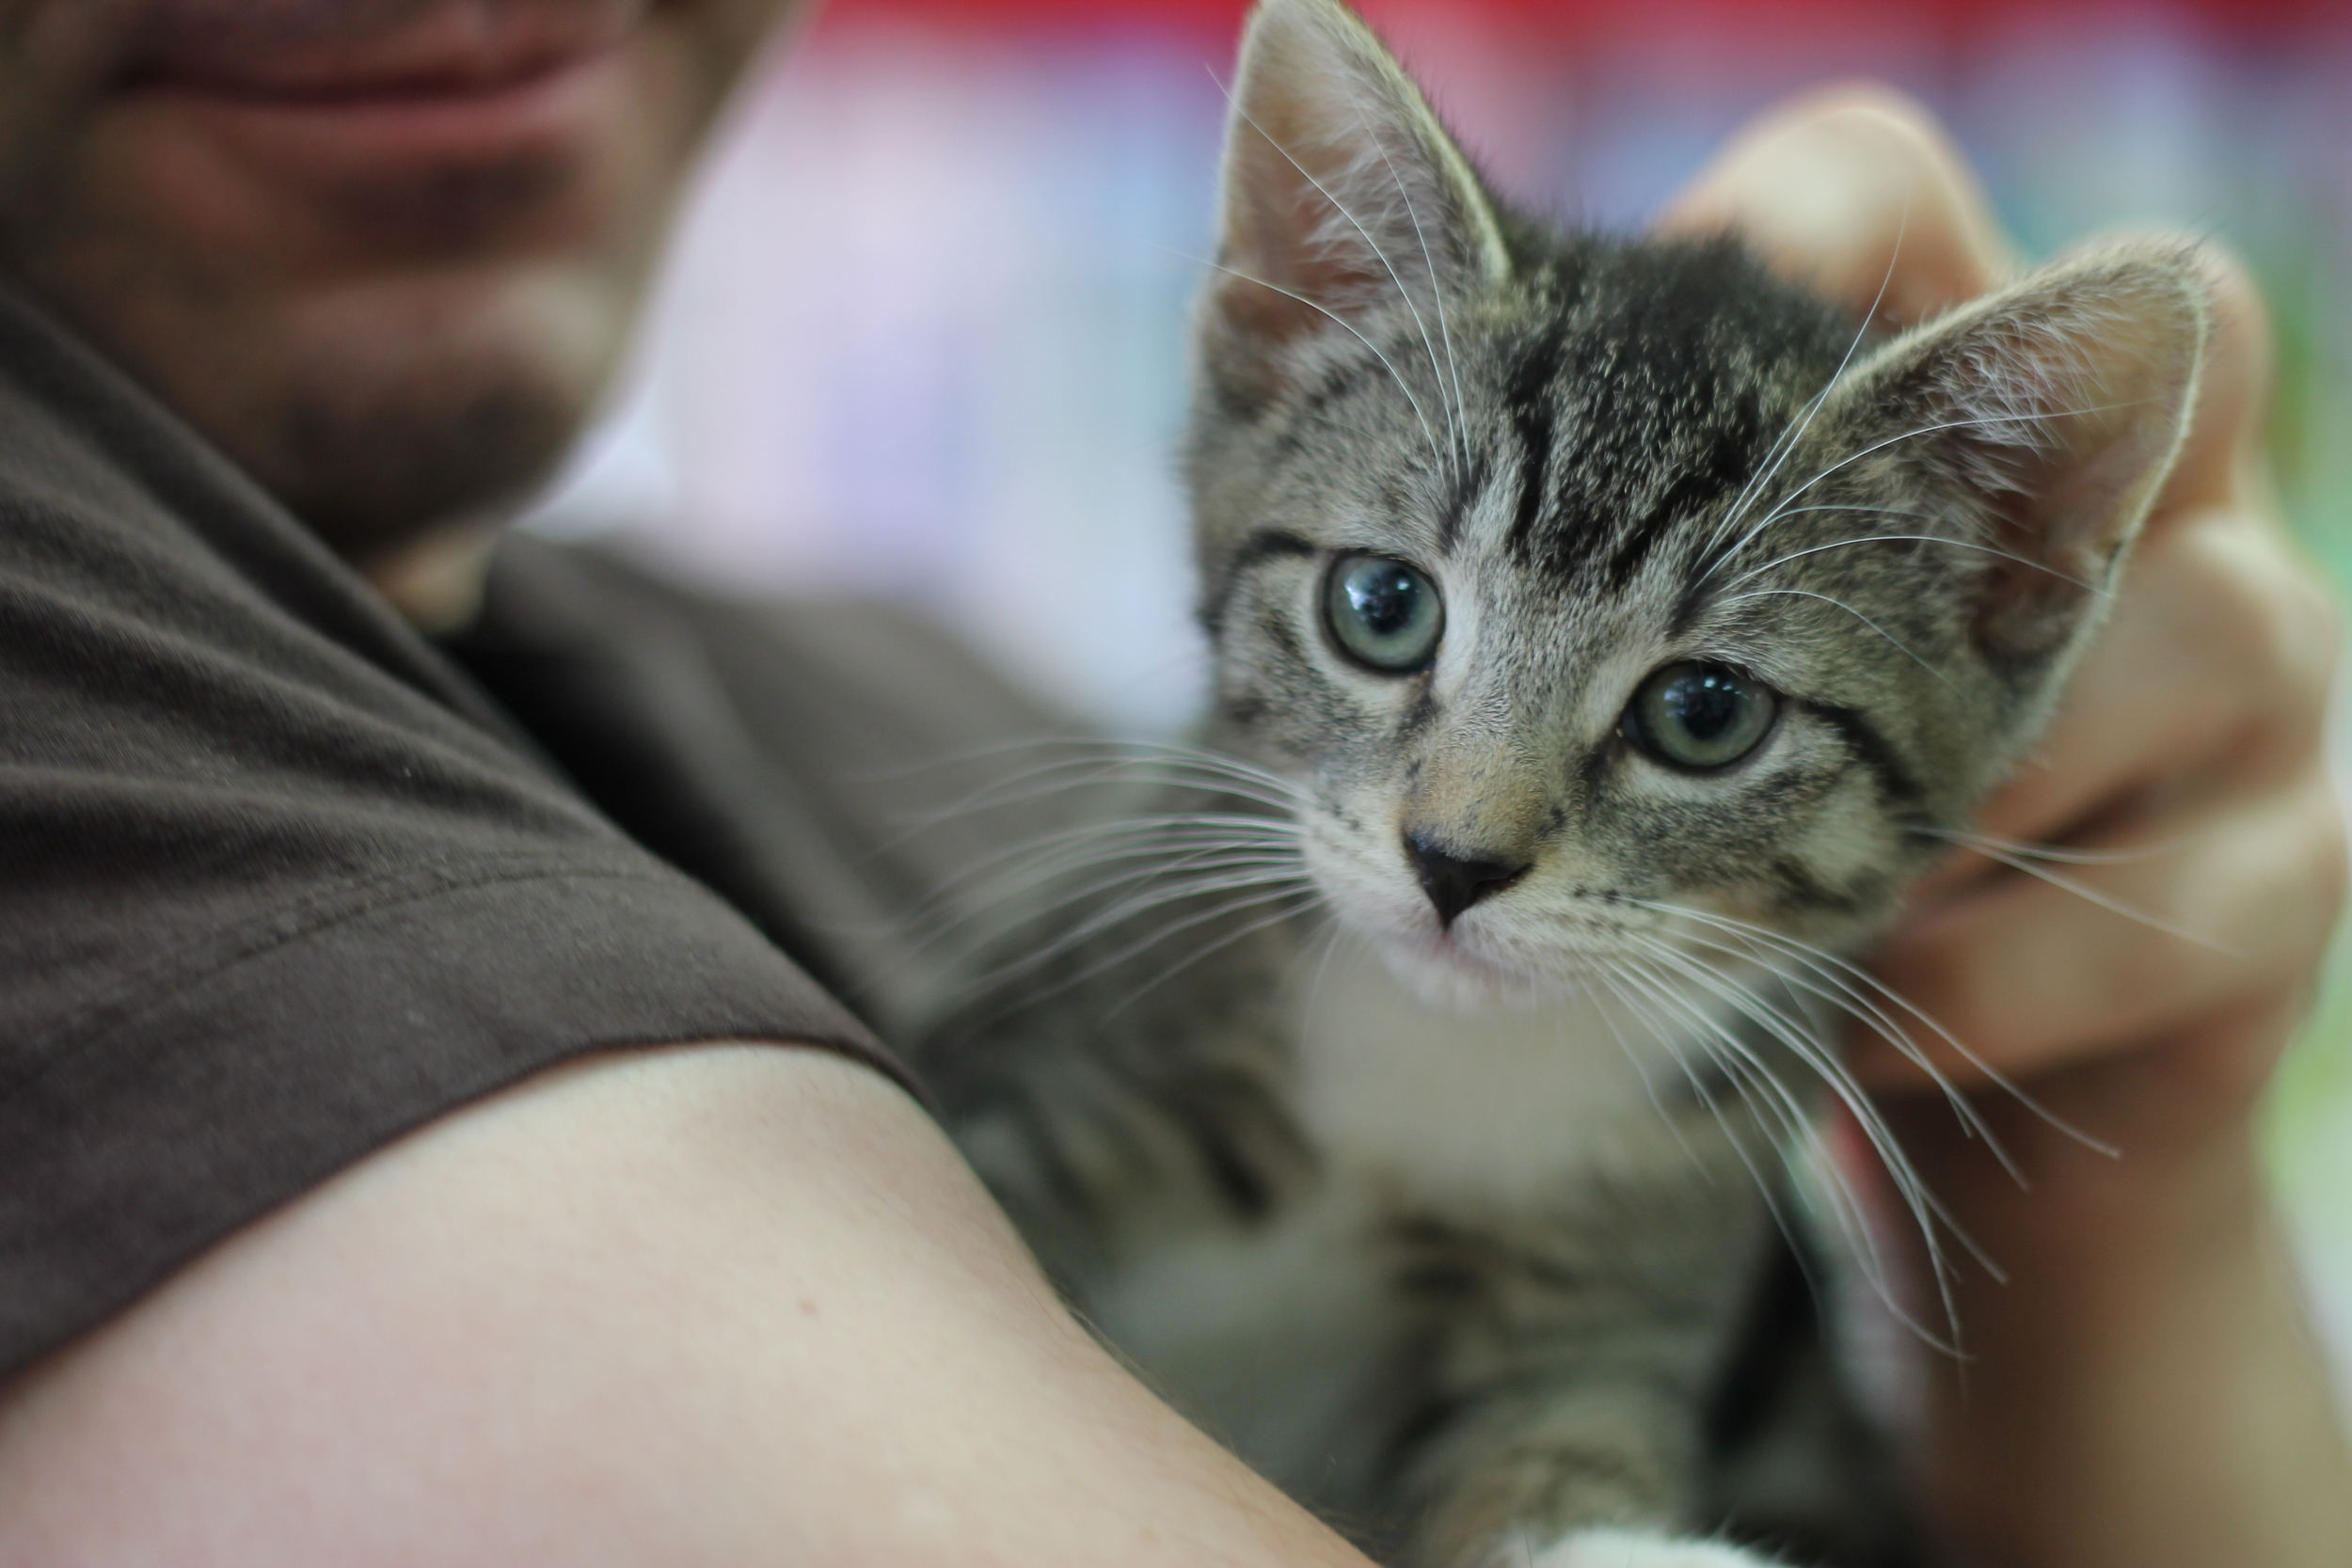 This is Smokey, a sweet kitten that is looking for a home. He is being held by Shawn, who along with Jennifer are guardians of four cats themselves. Looking to become fosters, they might decide to invite Smokey into their home.